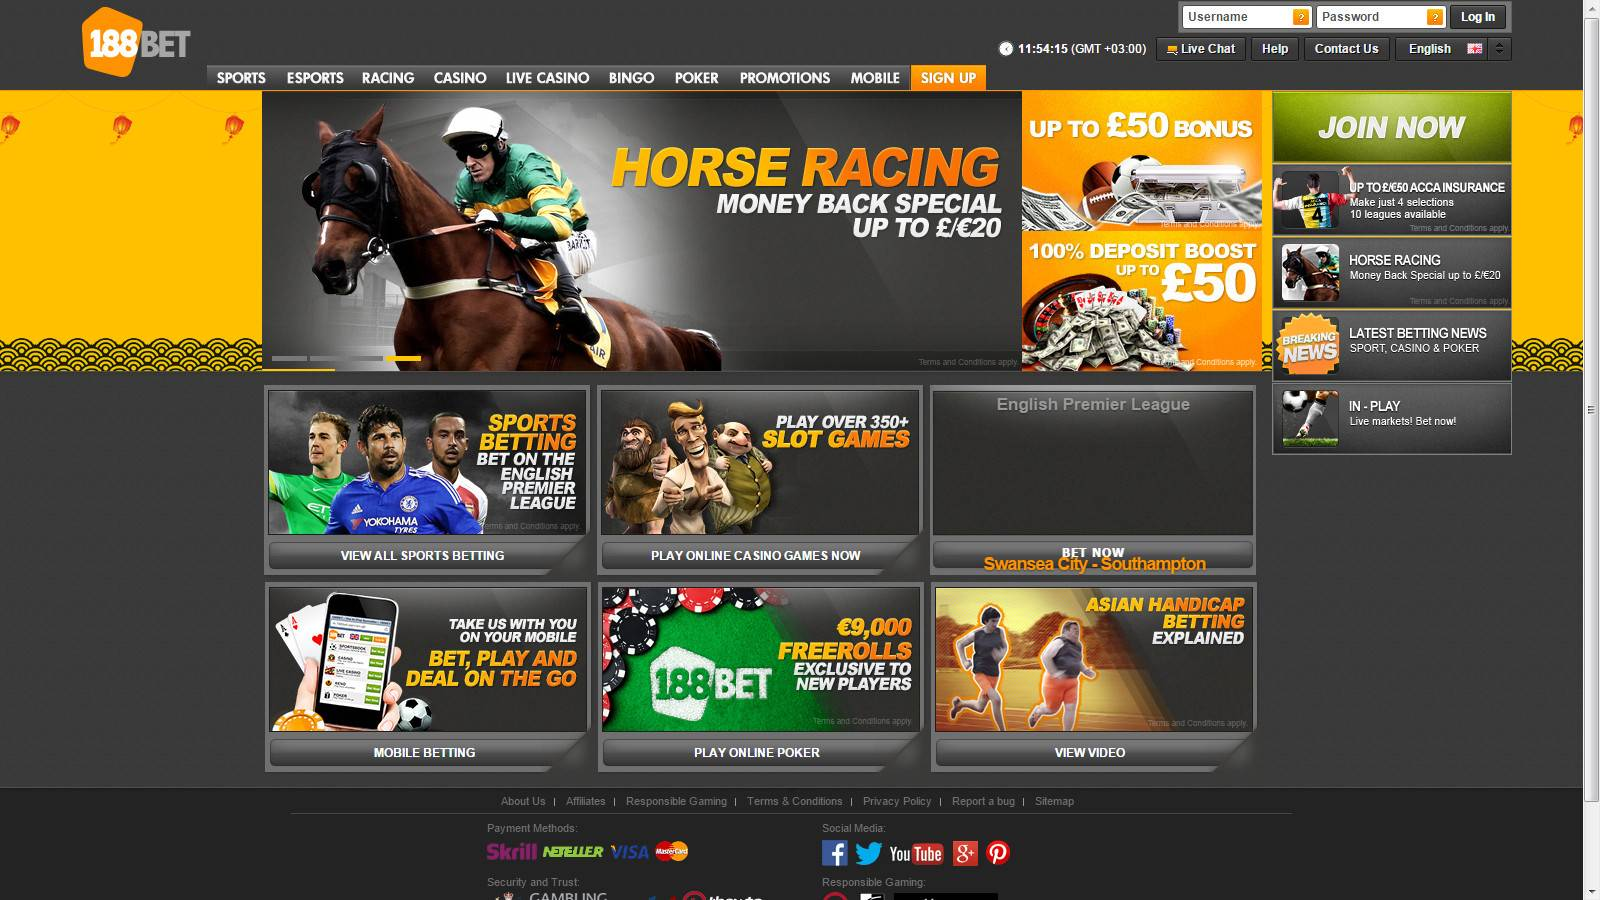 All you will need to know about online casino games